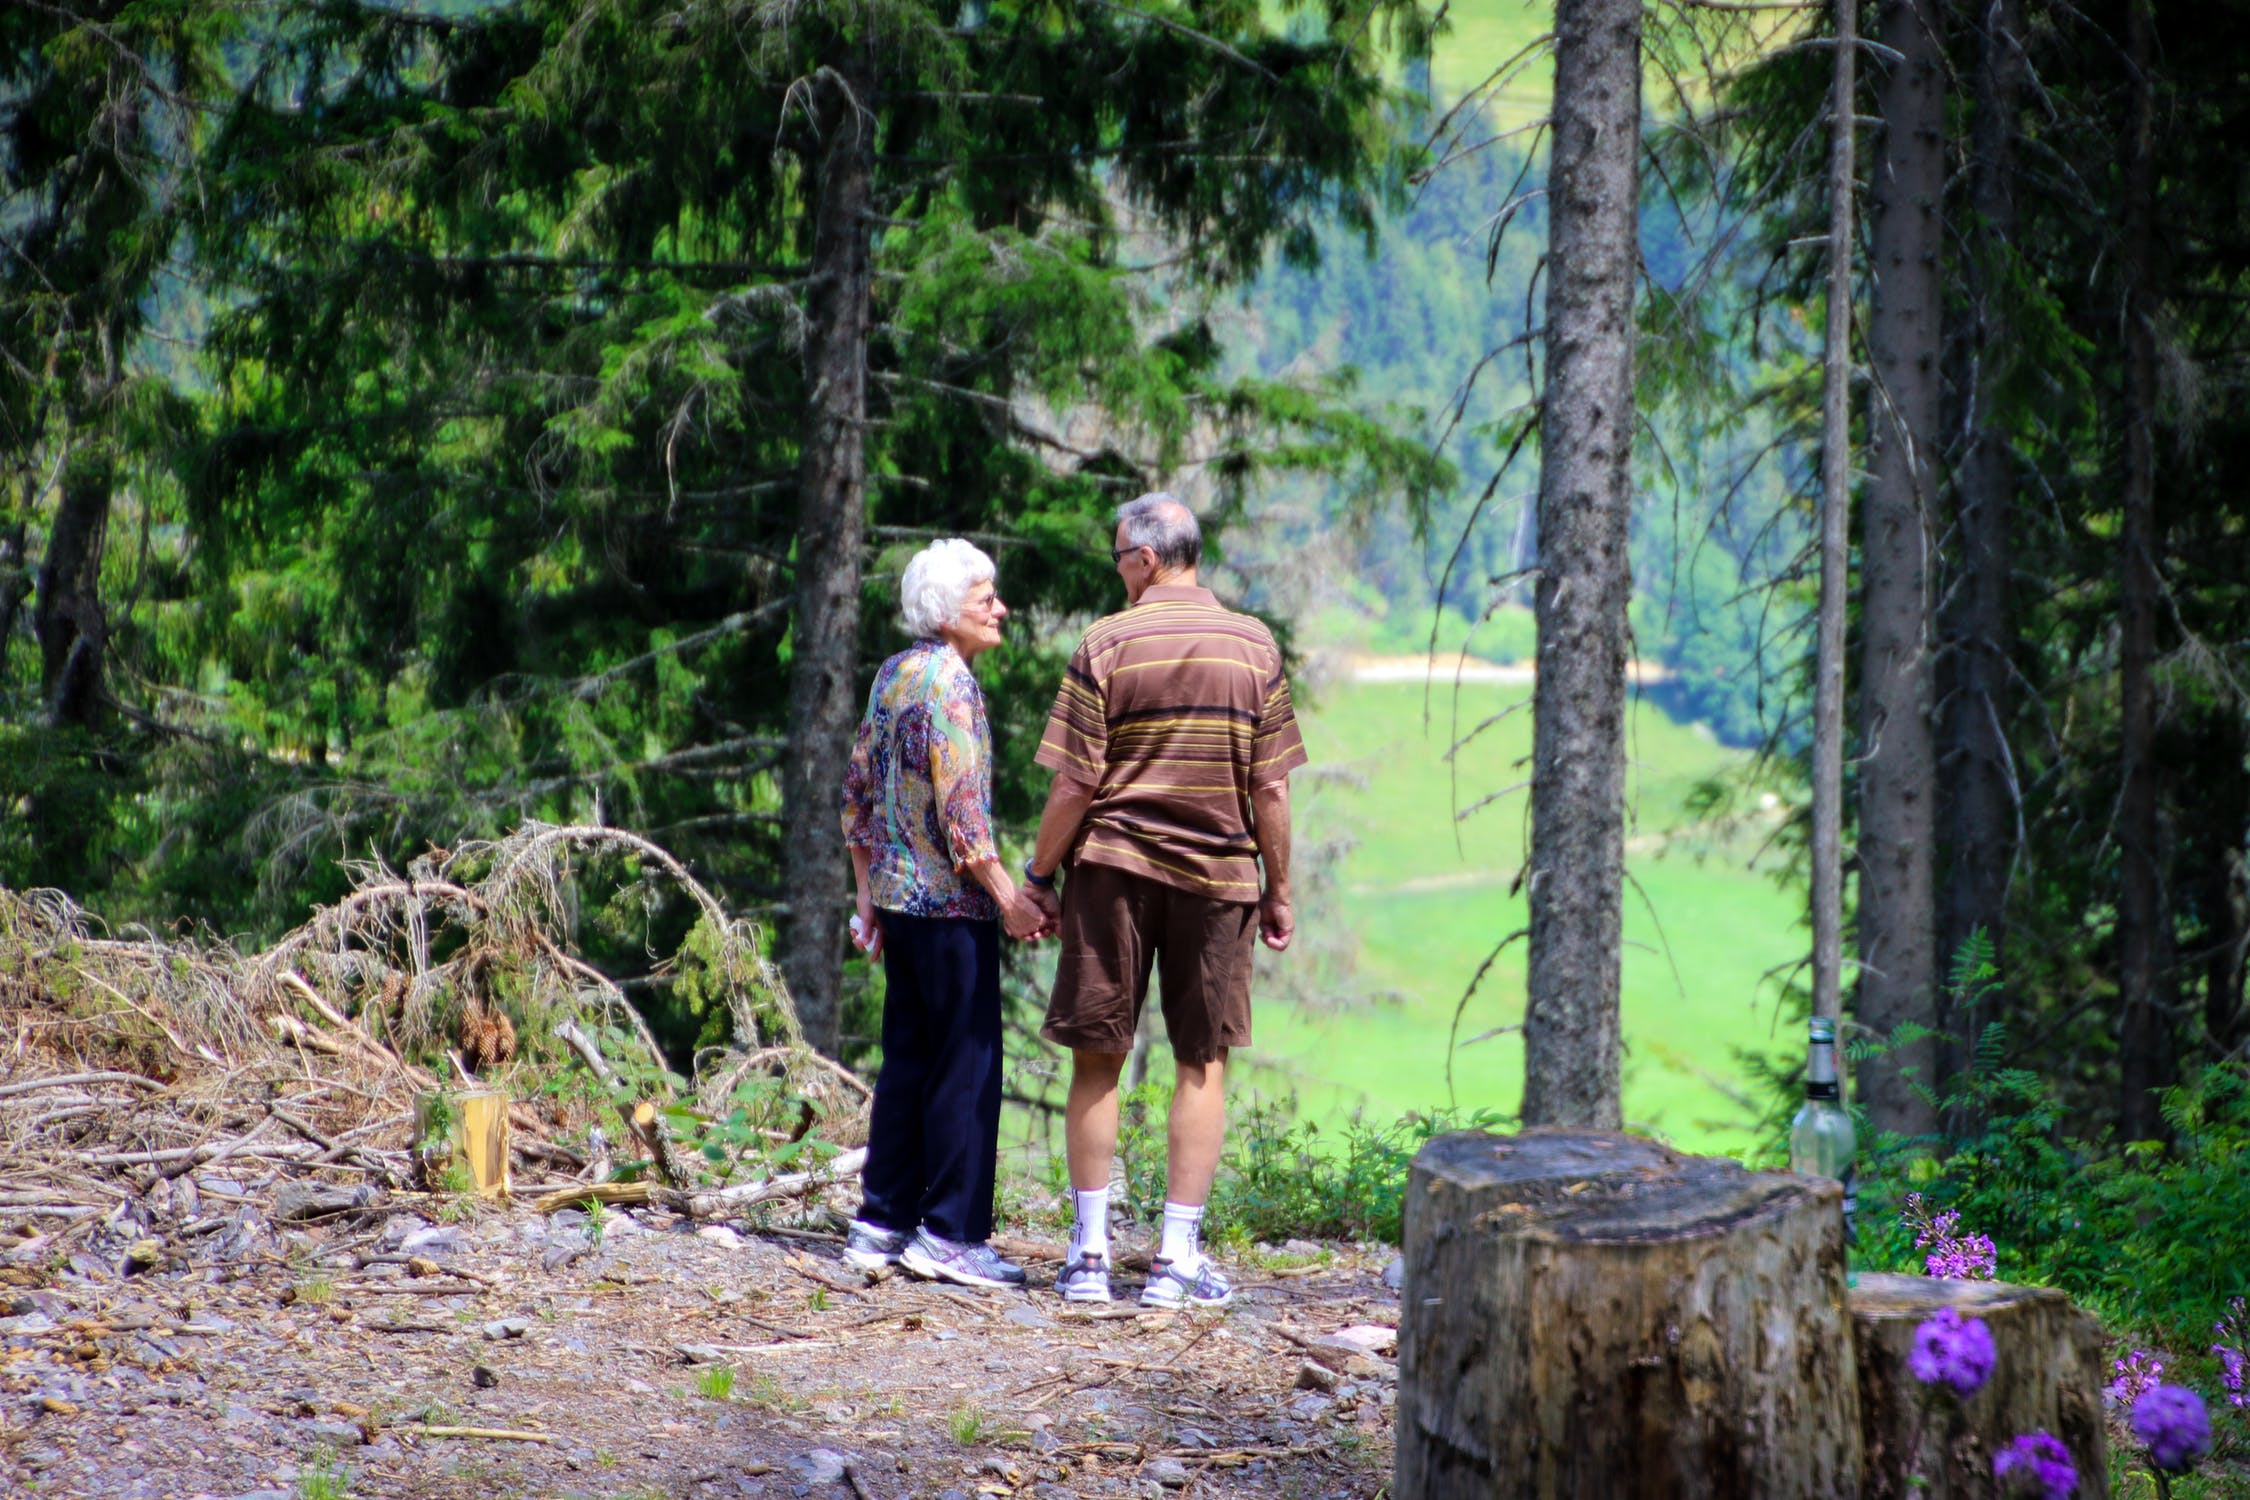 Elder Law Answers Hospice Care 101